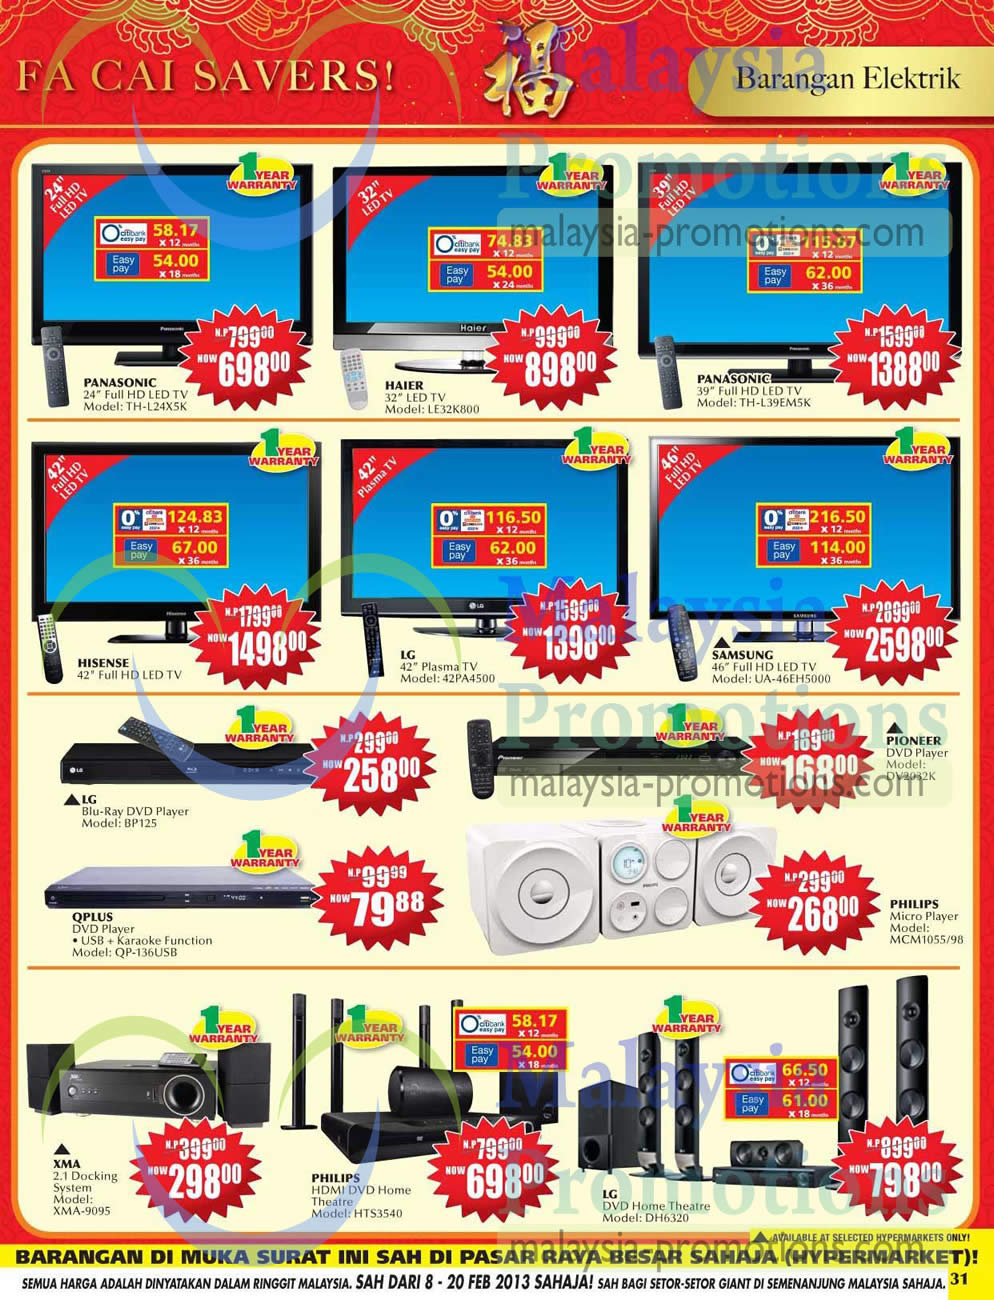 LED TVs, DVD Players, Home Theatre Systems, Panasonic, Haier, Samsung, LG, Philips, Pioneer, XMA